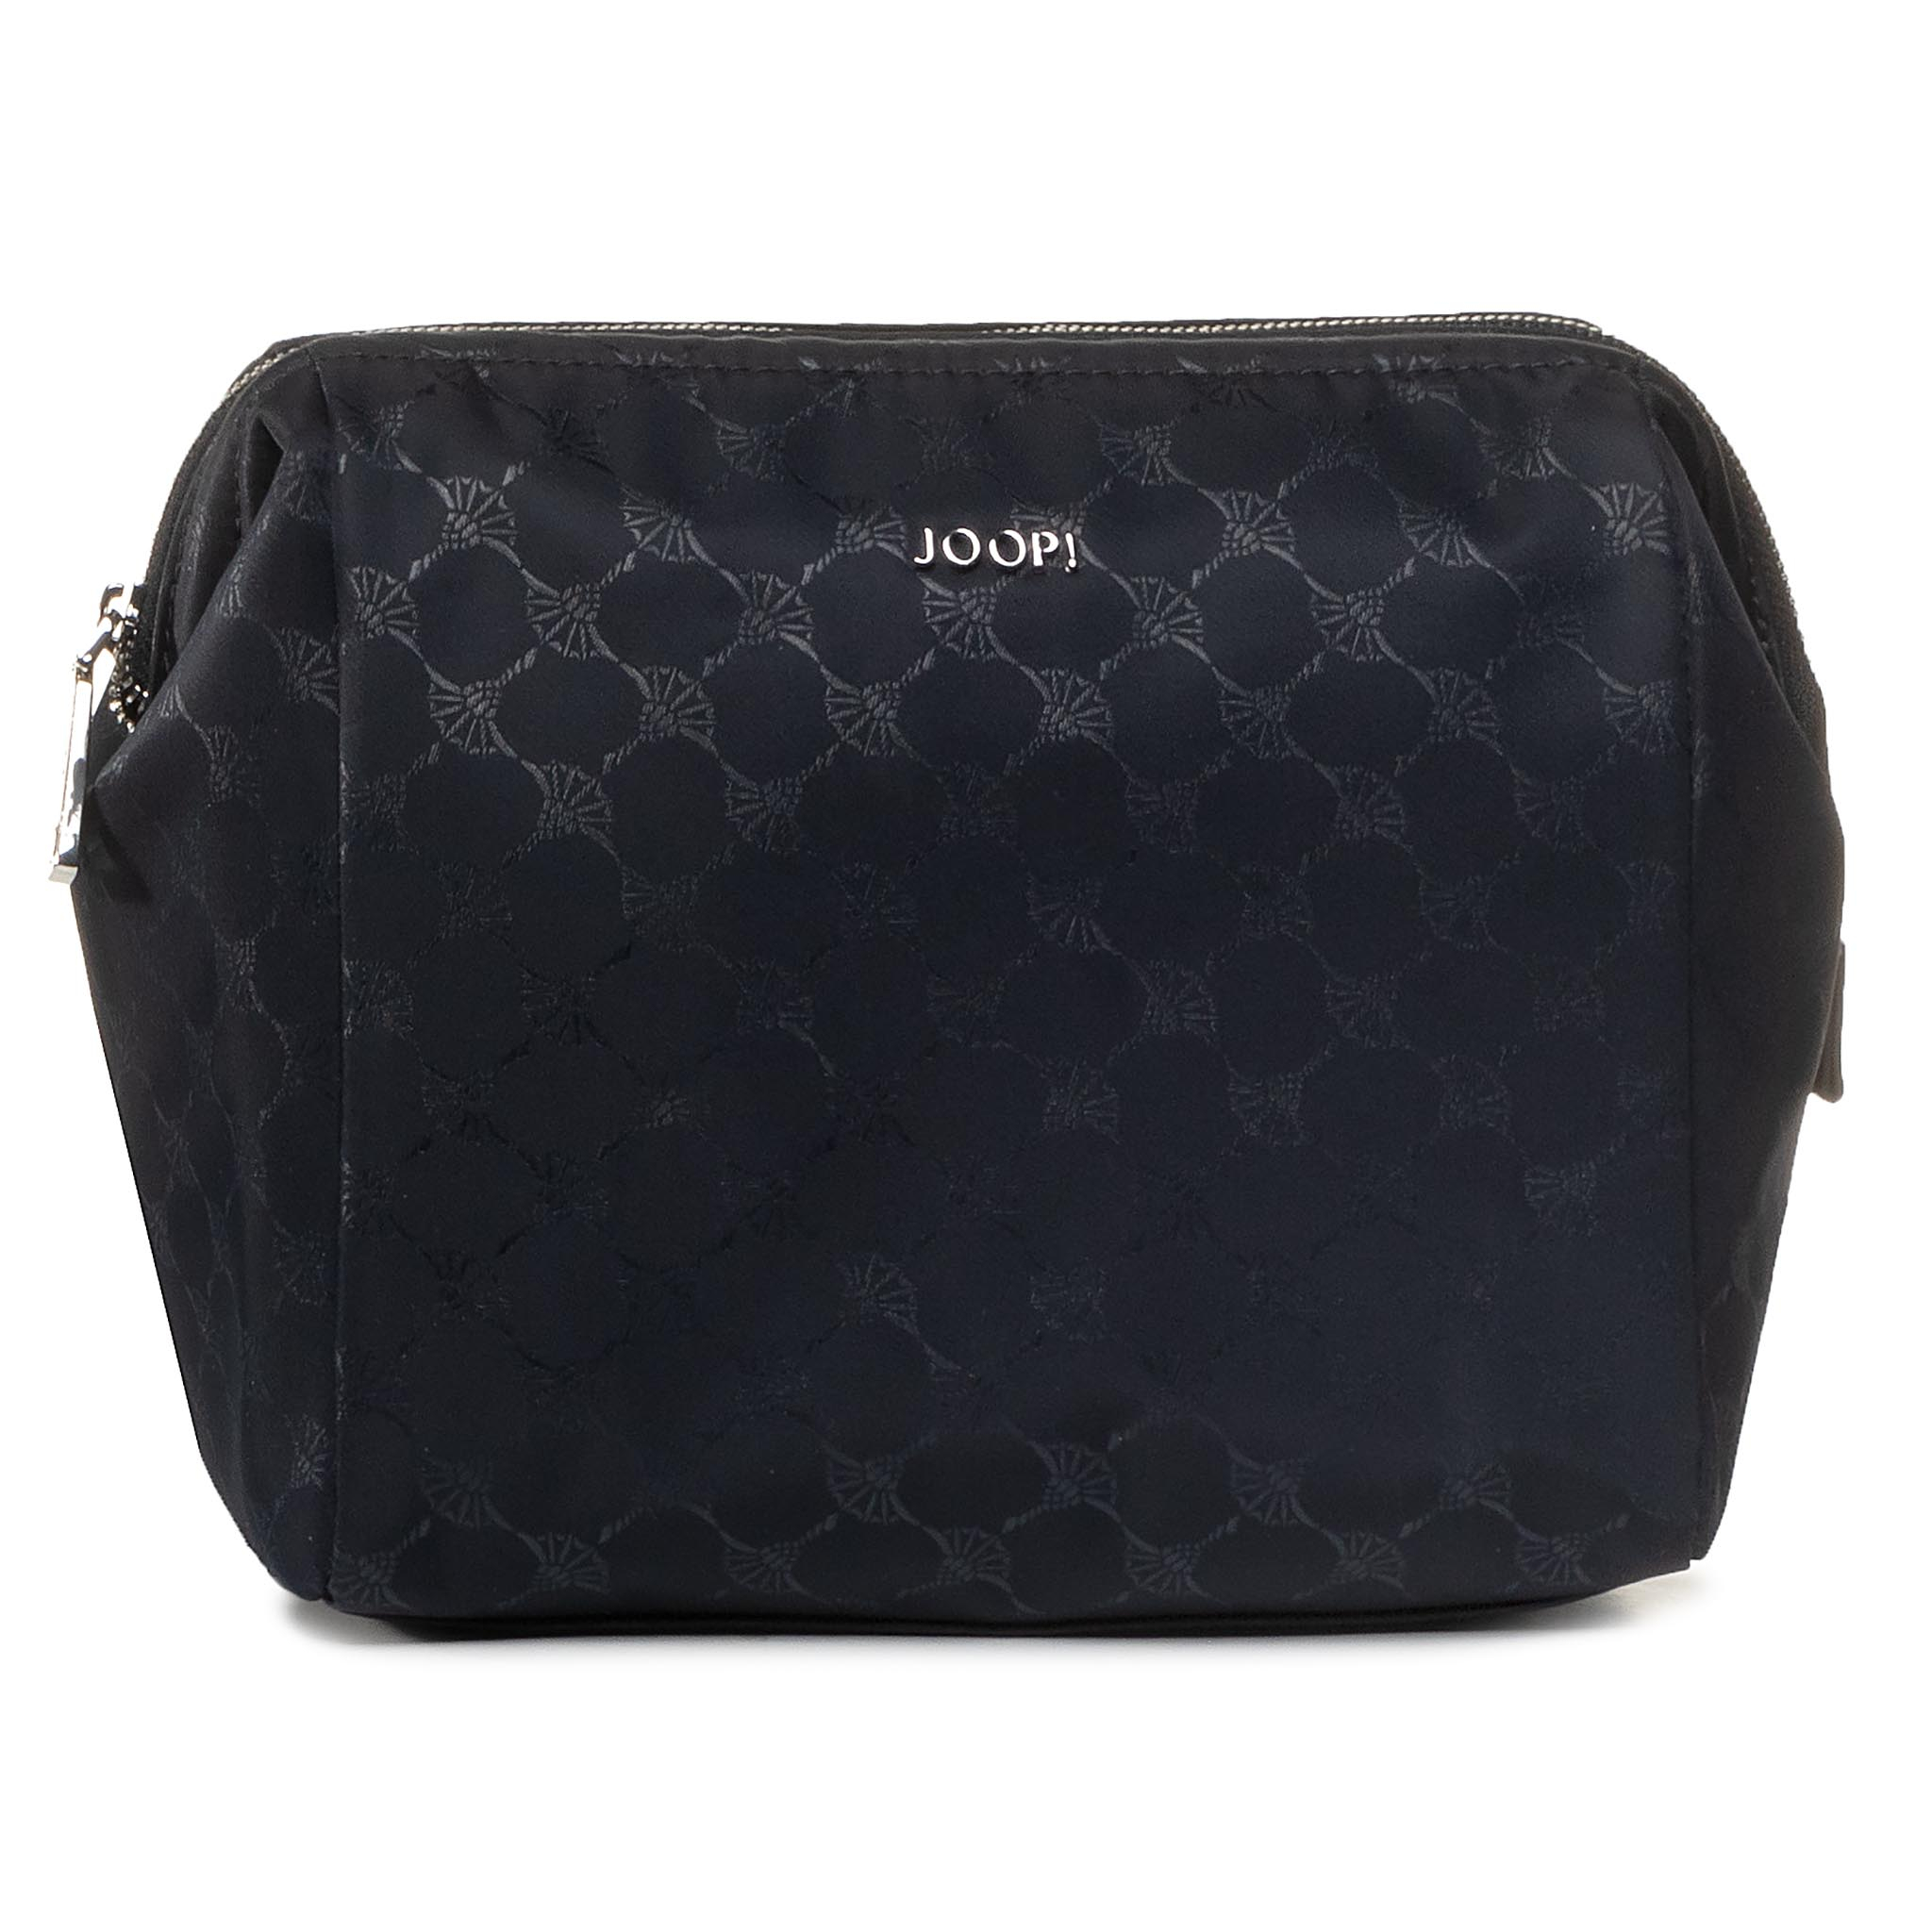 Geantă Pentru Cosmetice Joop! - Jade Washbag Mvz 4140004774 Night Blue 402 imagine epantofi.ro 2021